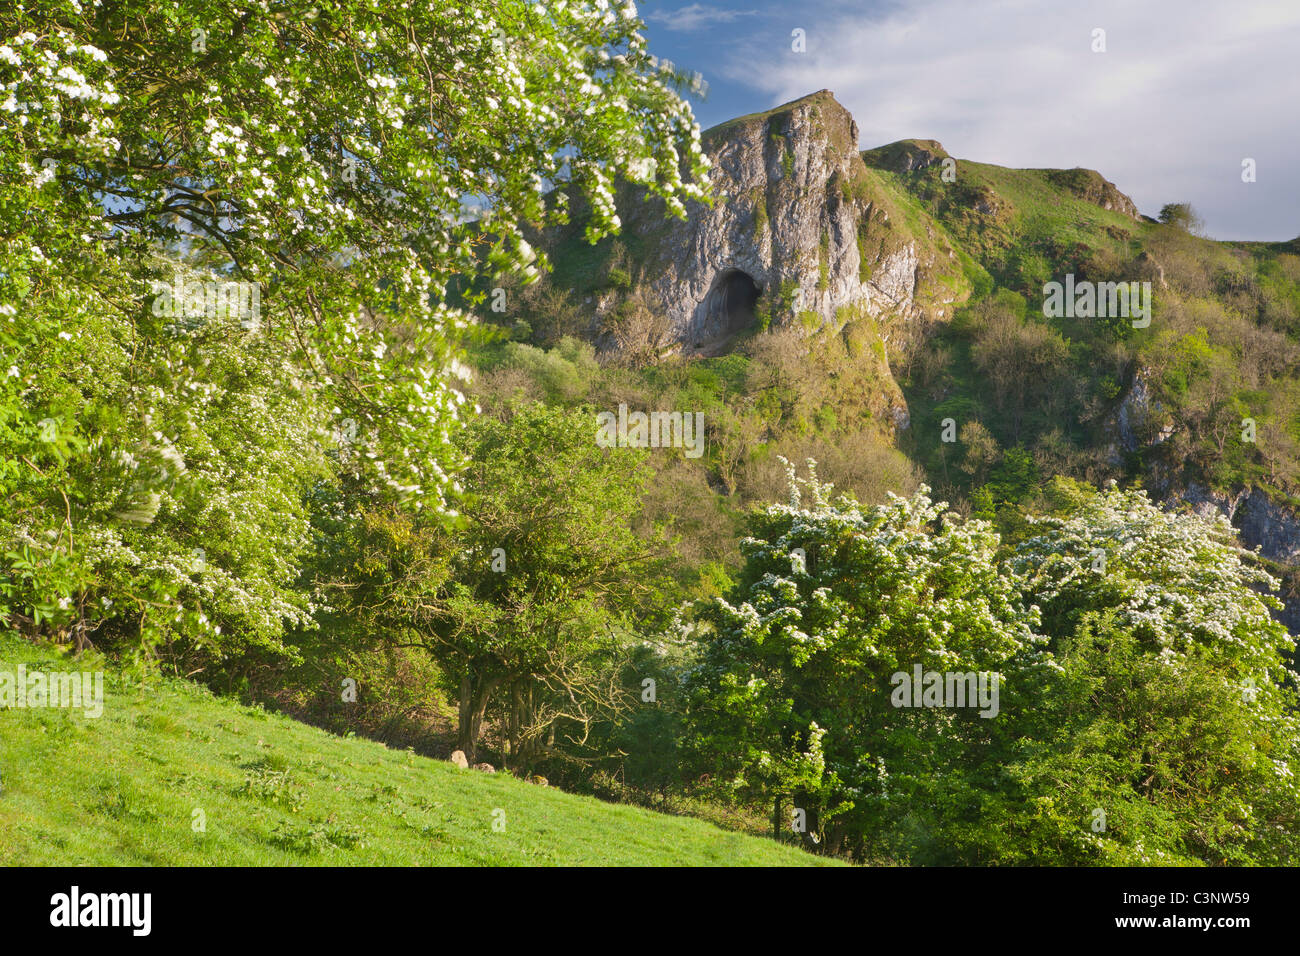 Thor's Cave with hawthorn trees in blossom, Manifold Valley, Staffordshire Moorlands, Peak District National - Stock Image